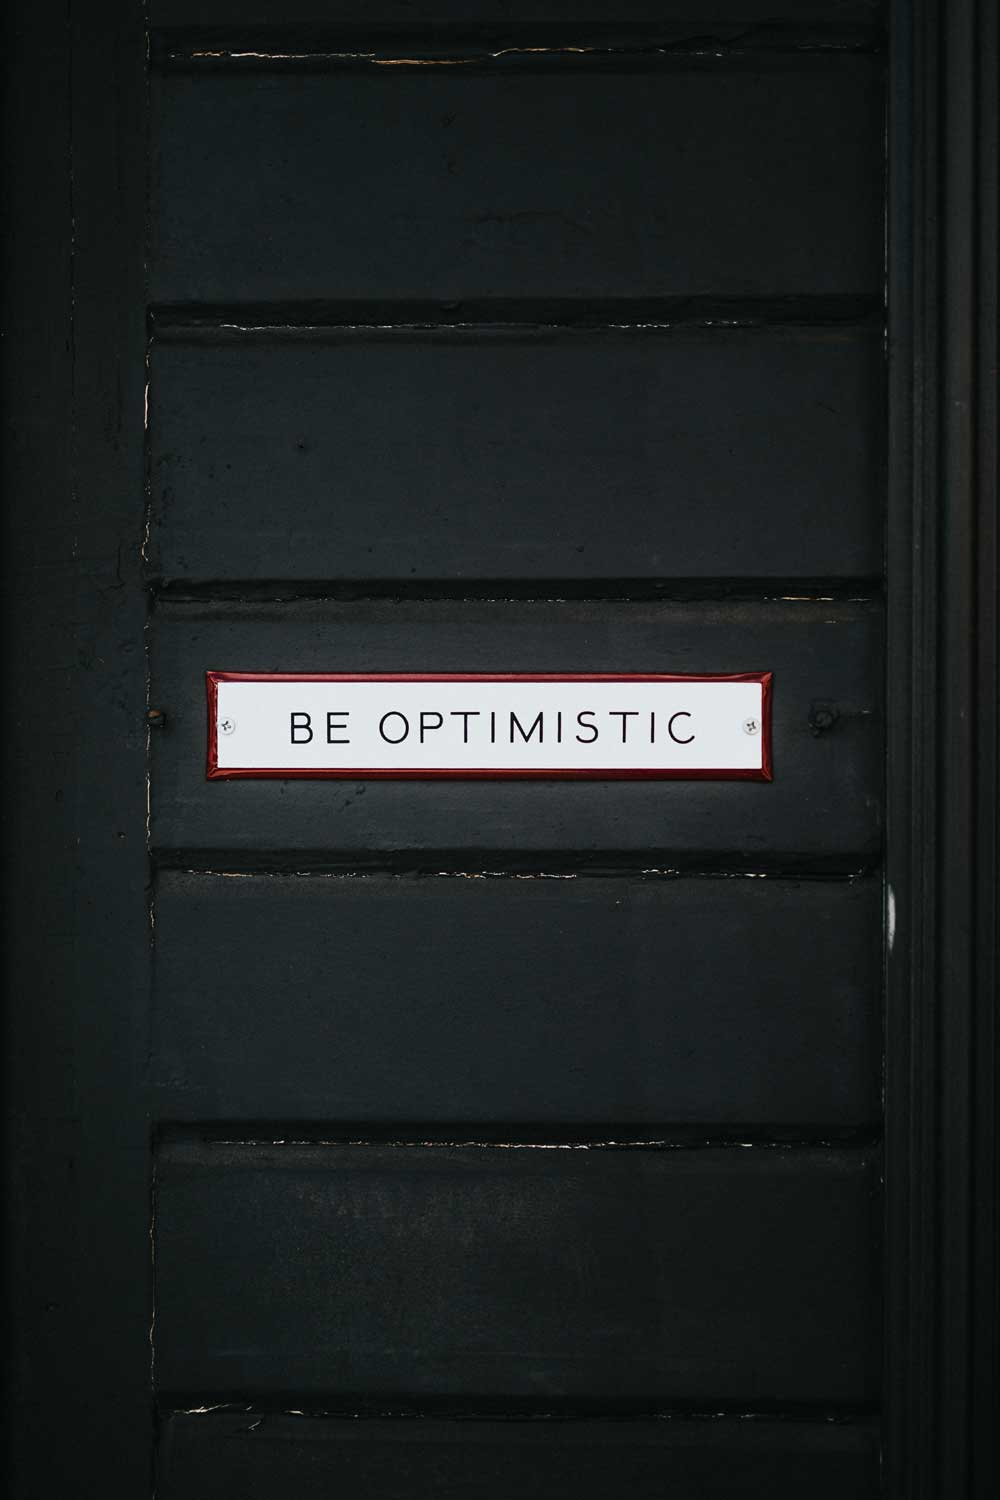 Be optimistic - Coaching